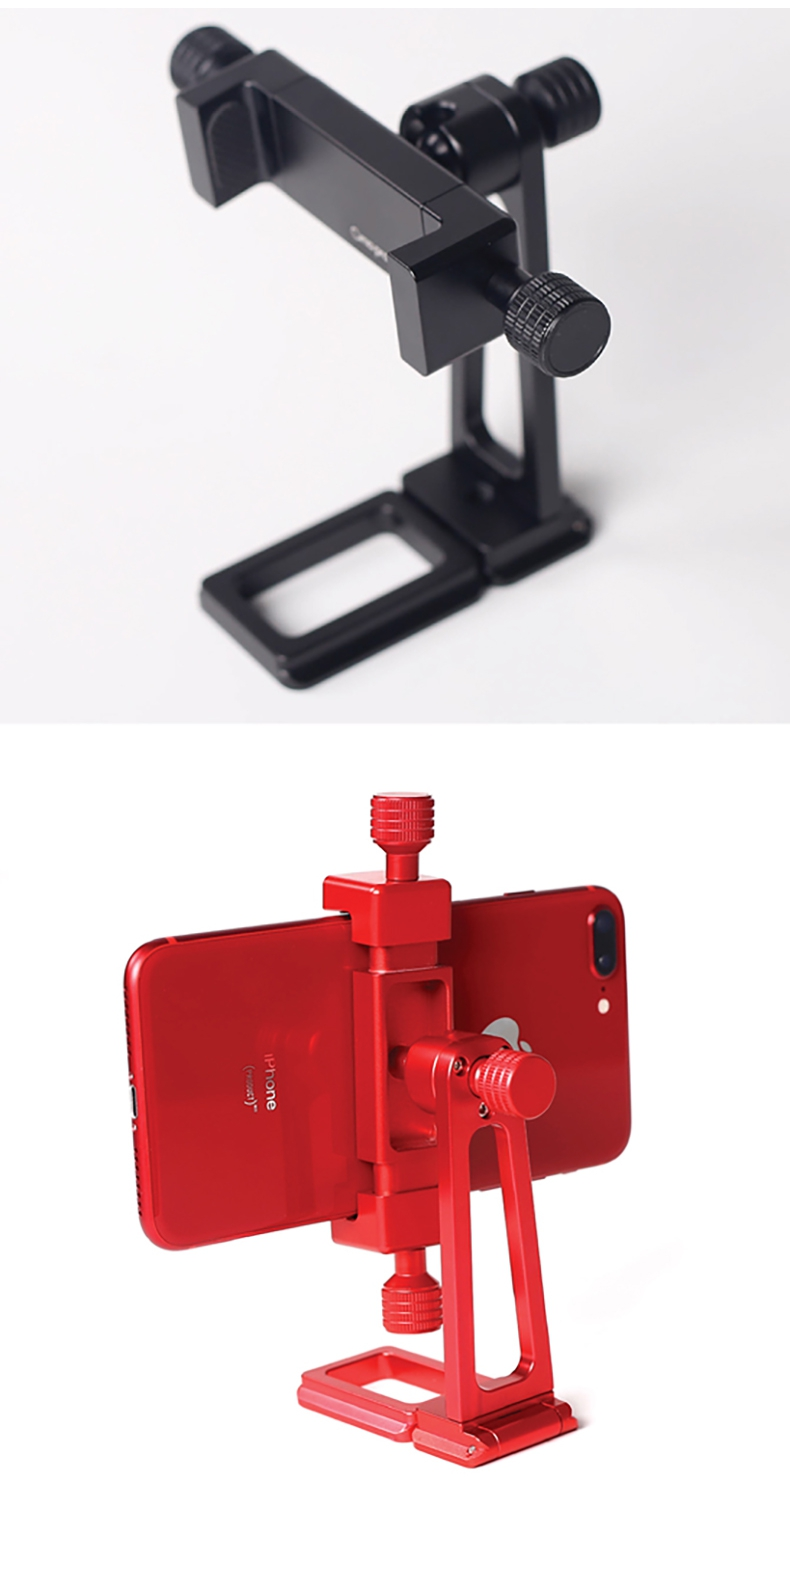 XILETU CP-2 Cima-Pro Smartphone Metal Clamp SLR Rotatable Mount 1/4 Screw Hole For Universal Tripod - Photo: 7